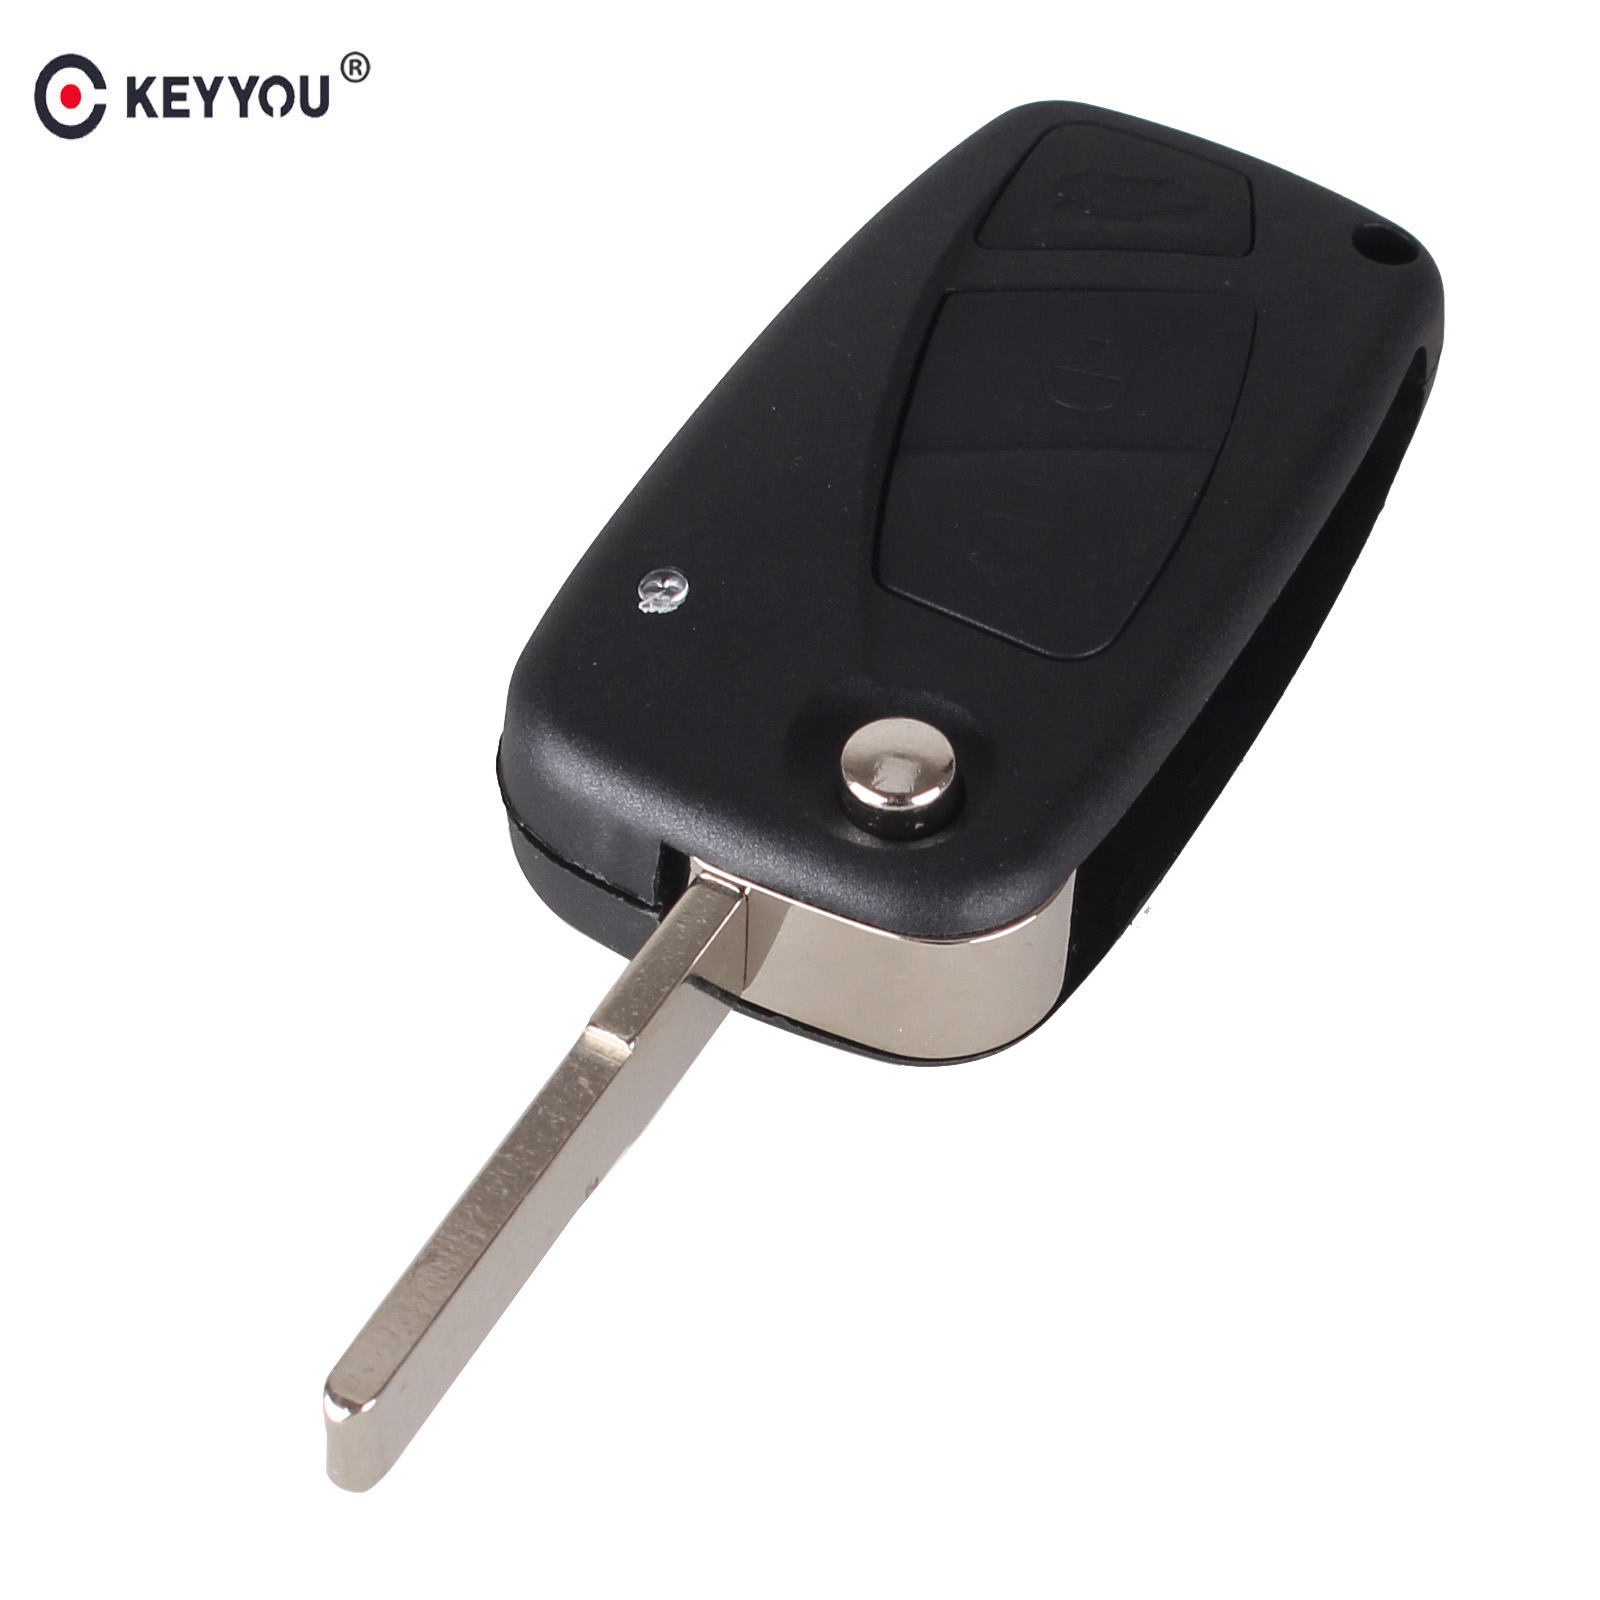 KEYYOU New 3 button 3 BTN For FIAT 3 button Punto Ducato Stilo Panda Flip Folding Remote Car Key Shell Case Cover SIP22 blade okeytech colorful remote car key shell cover replacement protective case for fiat 500 panda punto bravo flip folding 3 button